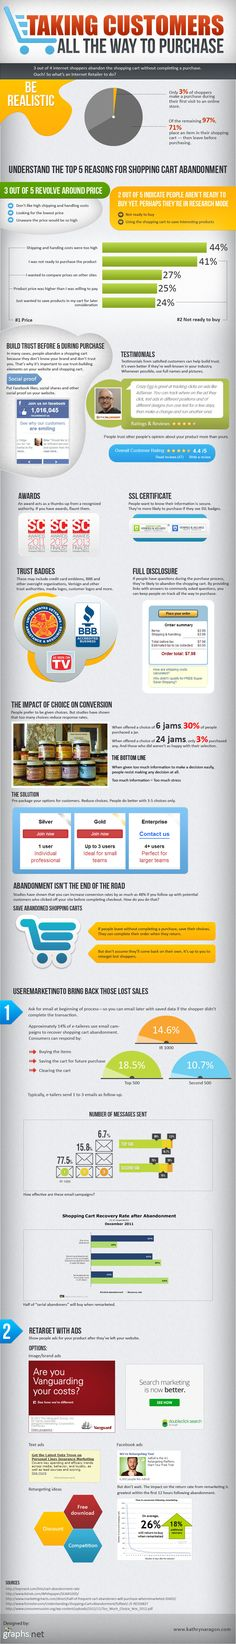 This infographic reviews the top 5 reasons for shopping cart abandonment and ways to recover a purchase after customers abandon the shopping cart.